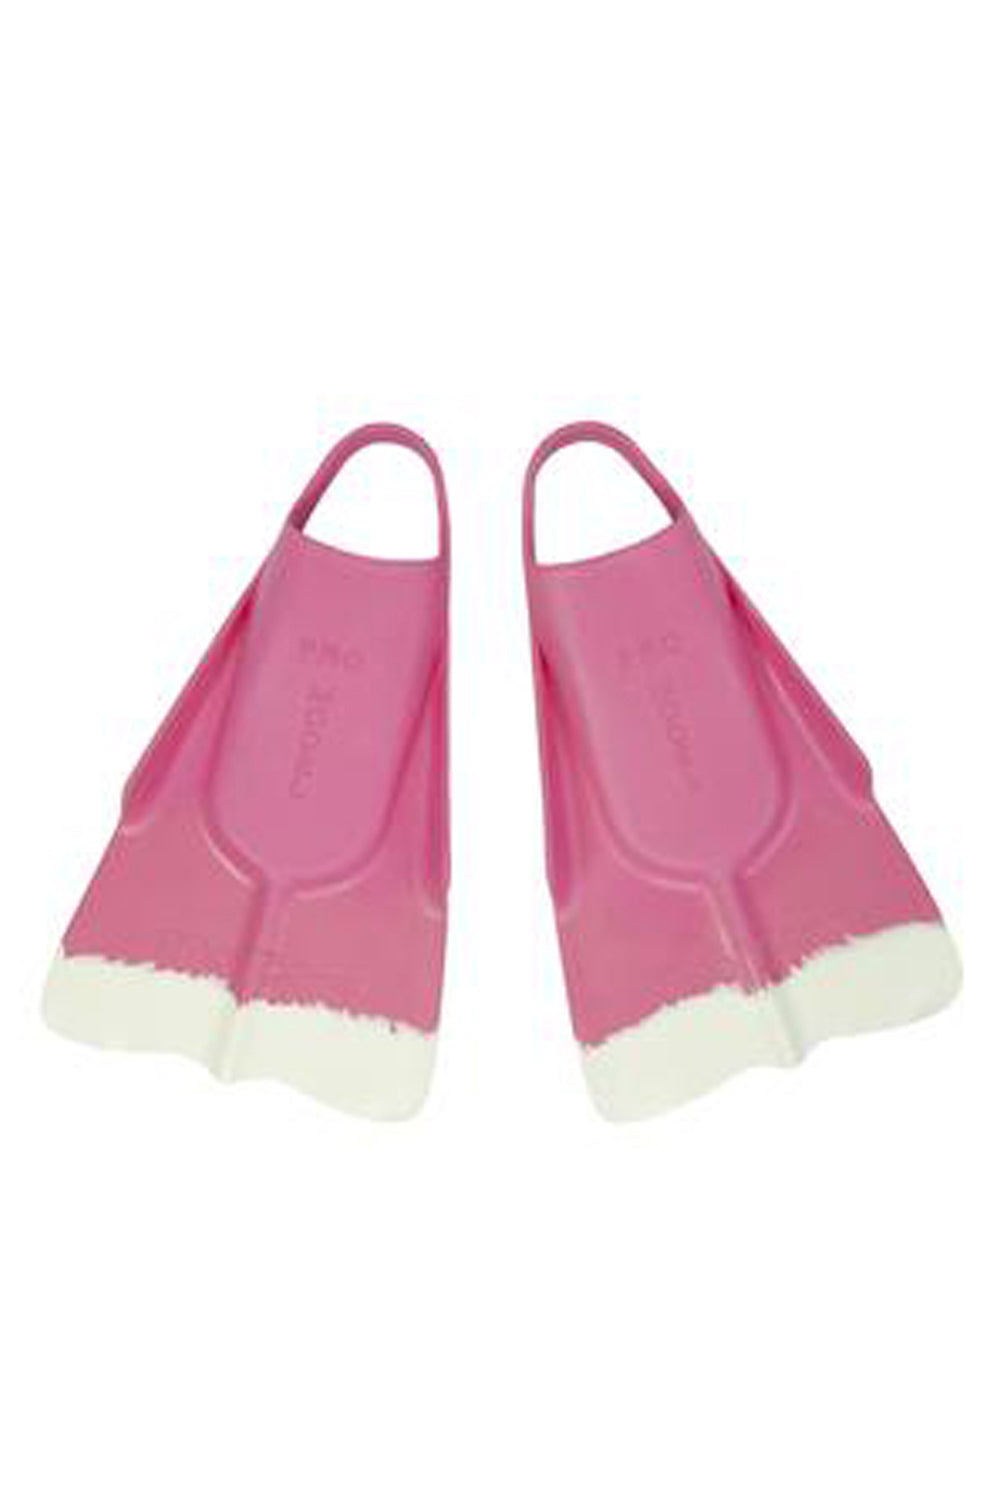 Da Fin Swimfins Flippers - Pink / White